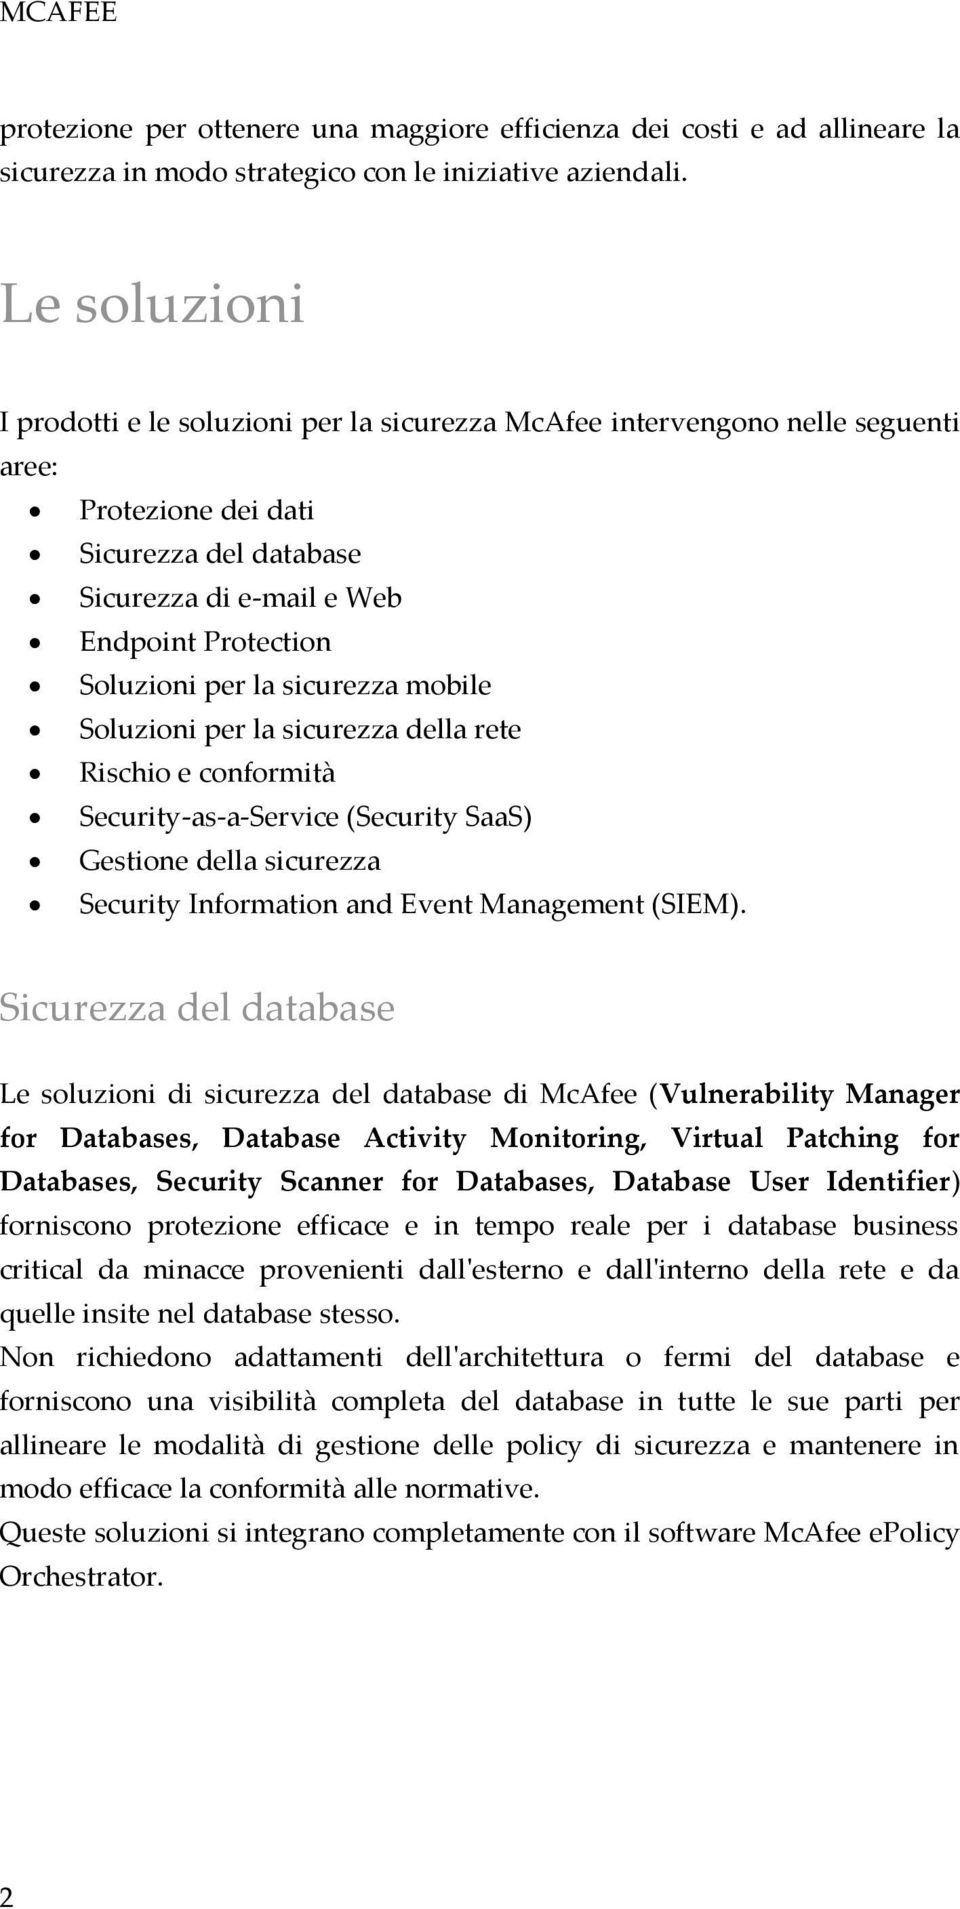 la sicurezza mobile Soluzioni per la sicurezza della rete Rischio e conformità Security-as-a-Service (Security SaaS) Gestione della sicurezza Security Information and Event Management (SIEM).